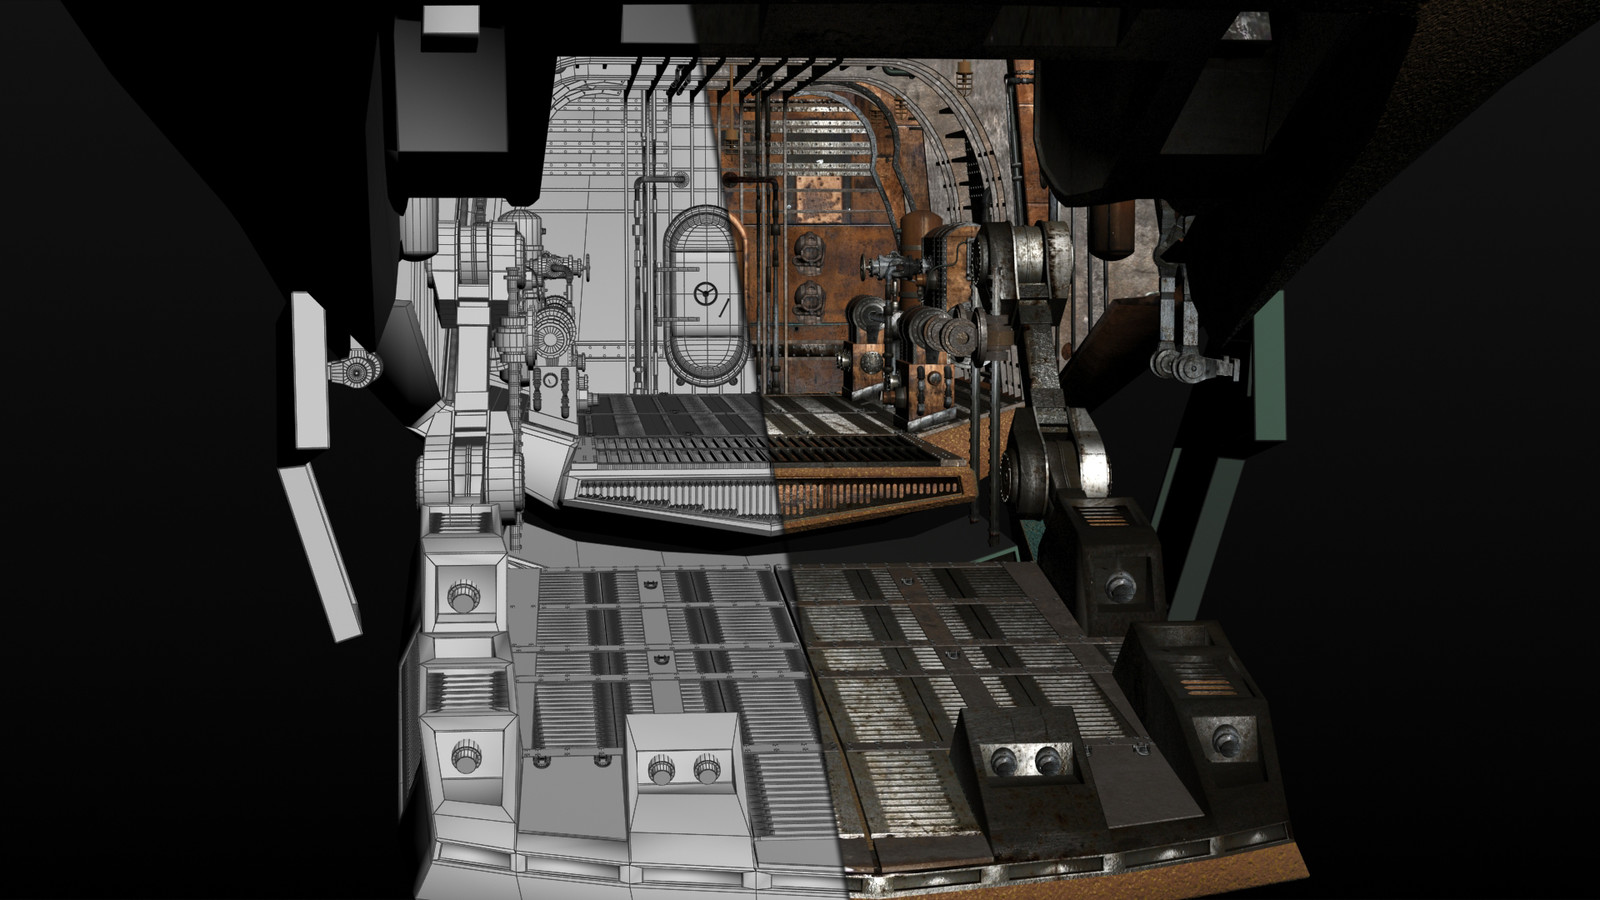 Design and modeling/surfacing of Nautilus cargo bay.